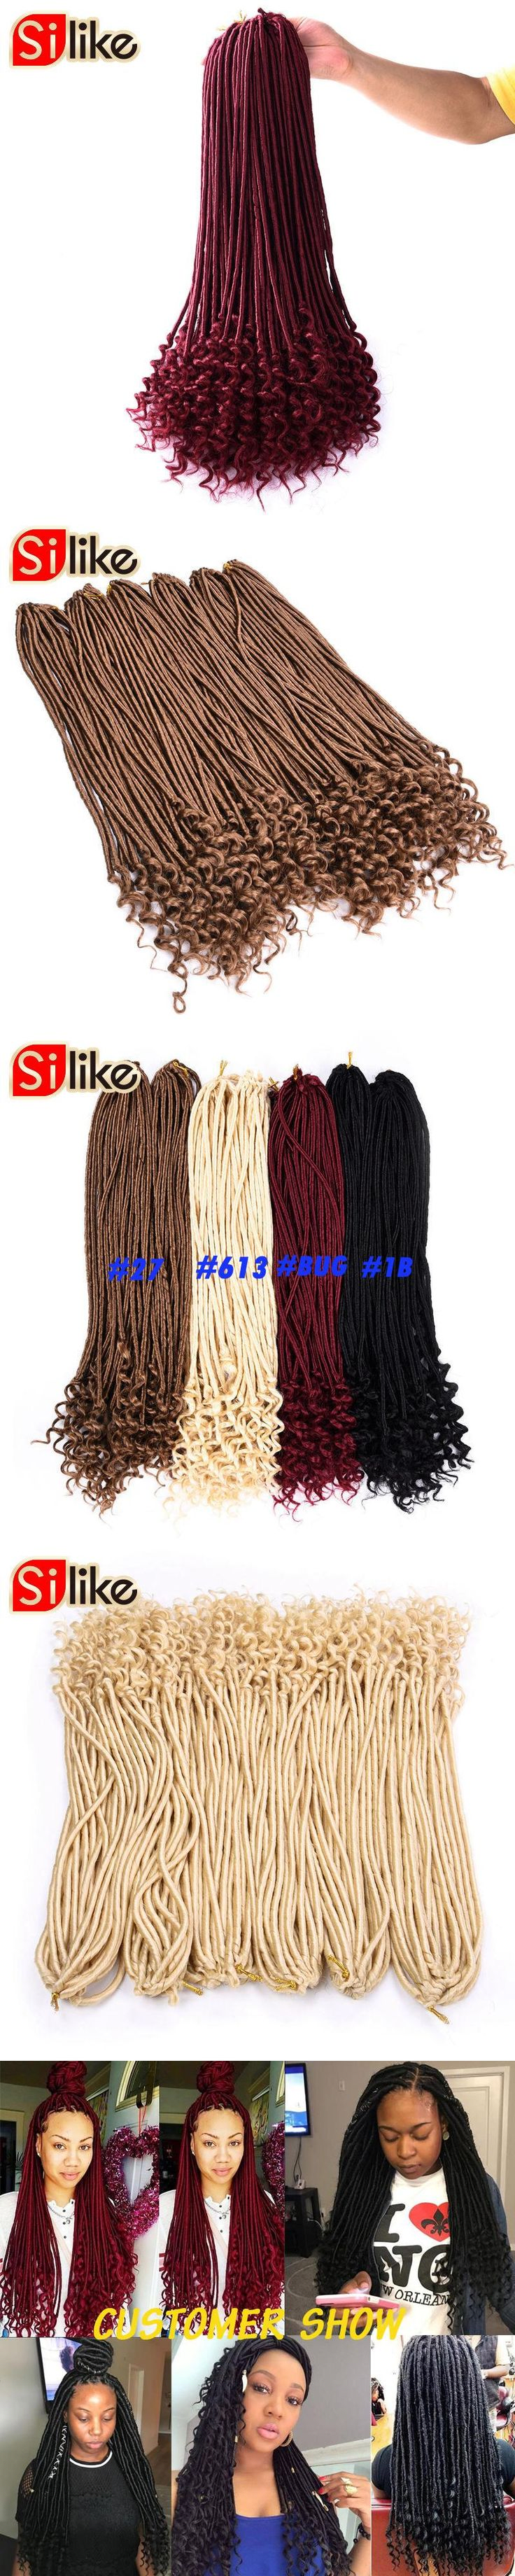 Silike 20 inch Crochet Braids Faux Locs Curly 24 Roots Synthetic Crochet Braiding Hair Extensions 90-100 g for Black women